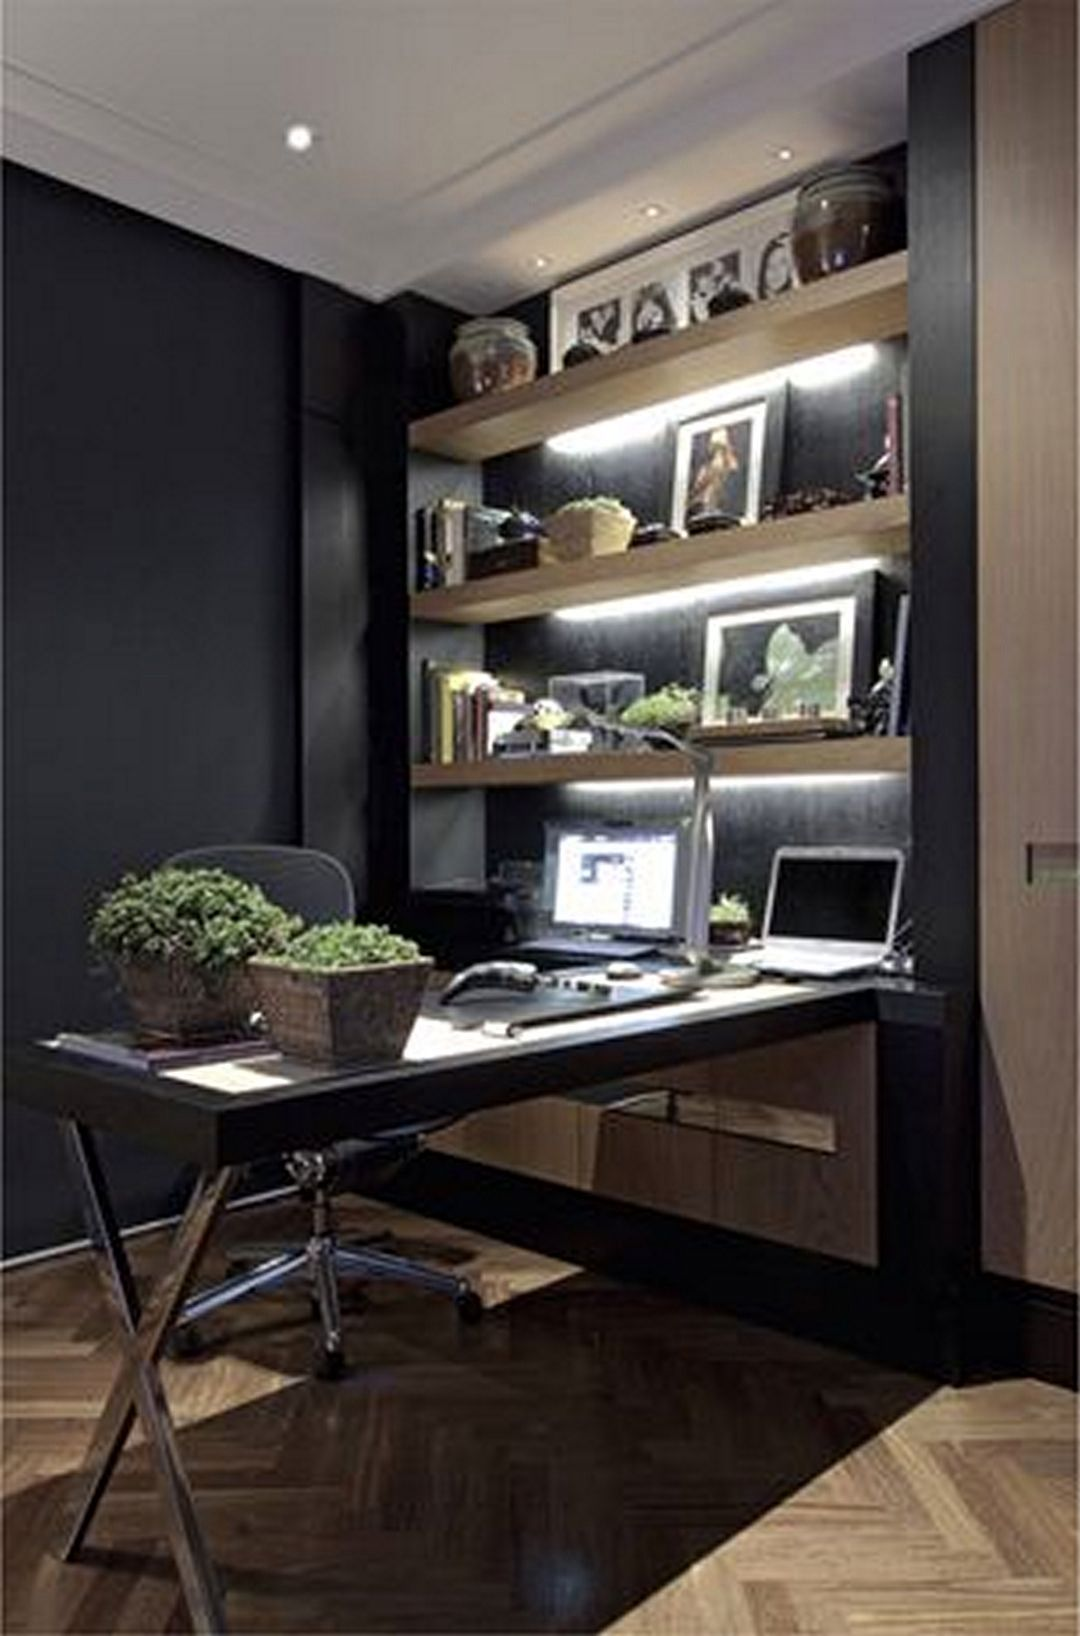 170 Beautiful Home Office Design Ideas | Office designs, Office ...